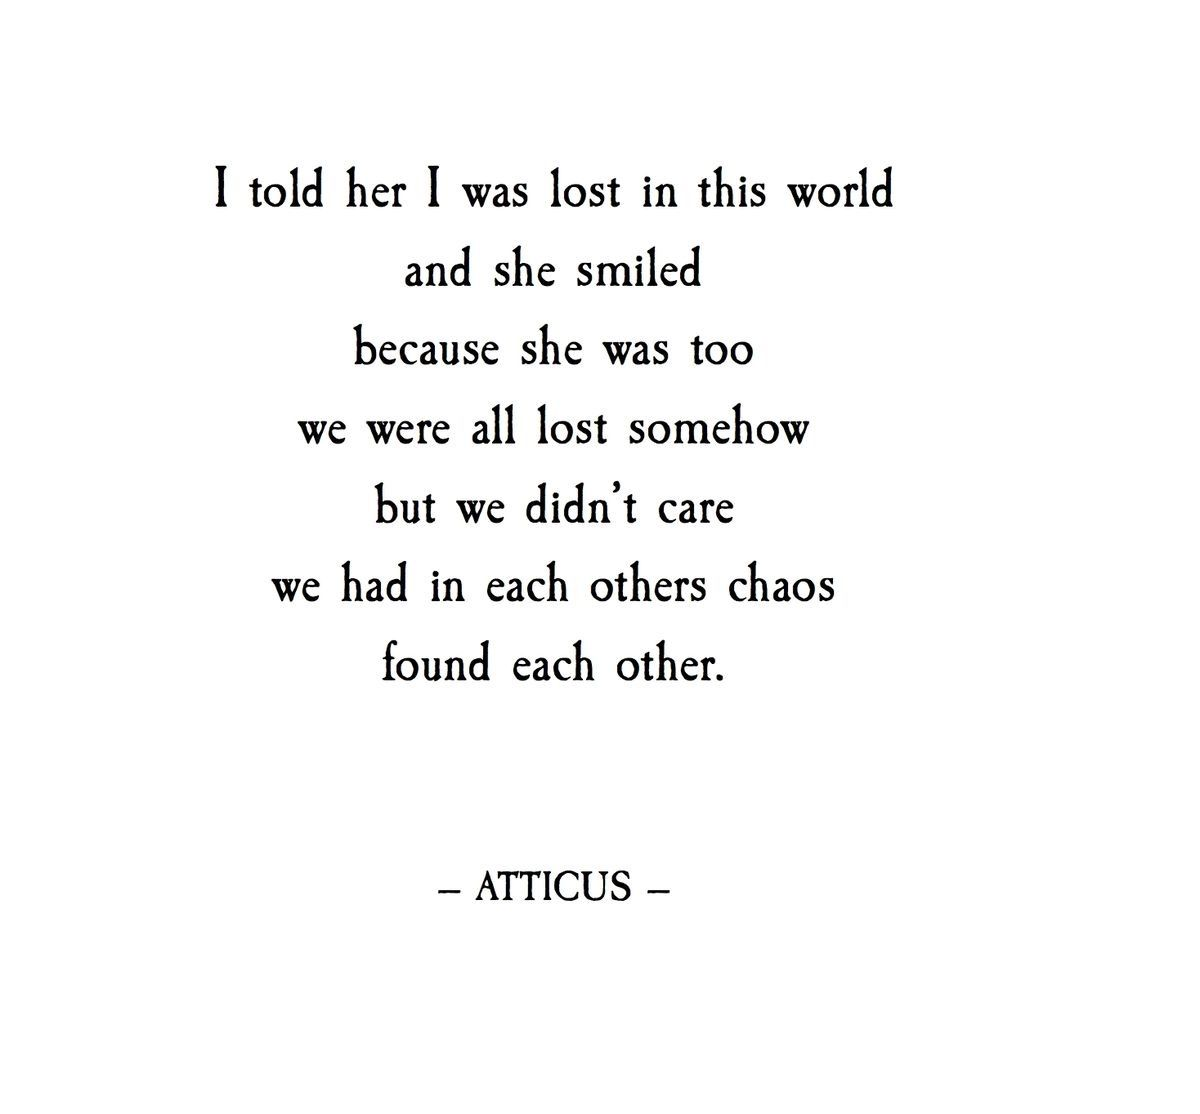 This Poem Reminds Me Of Natasha And How We Both Had Our Own Problems Yet We Found Each Other